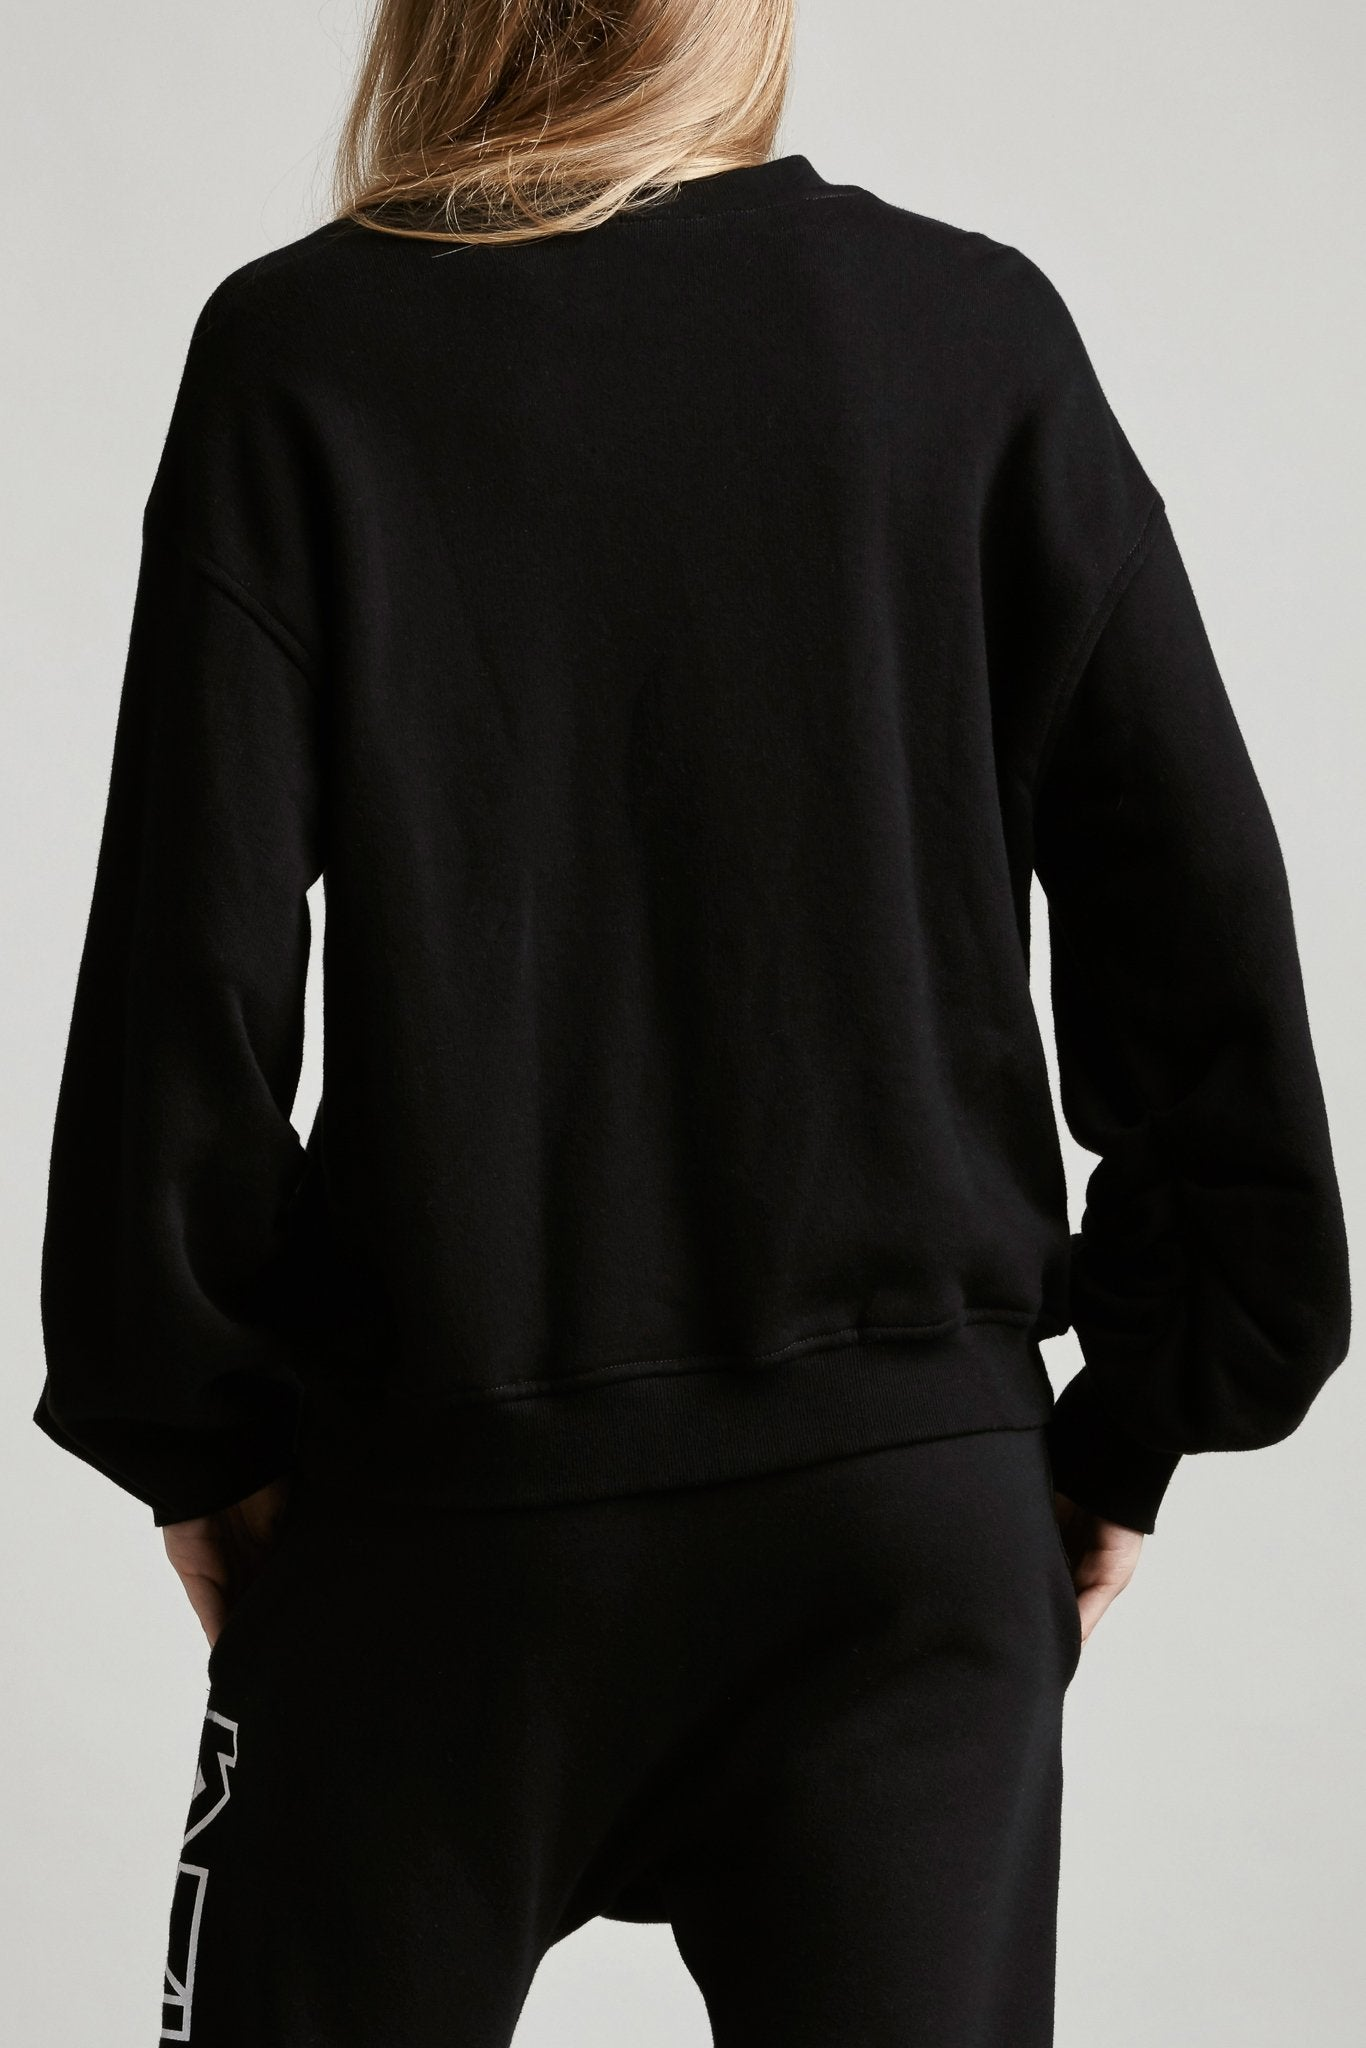 Pleated Sleeve Sweatshirt - Black